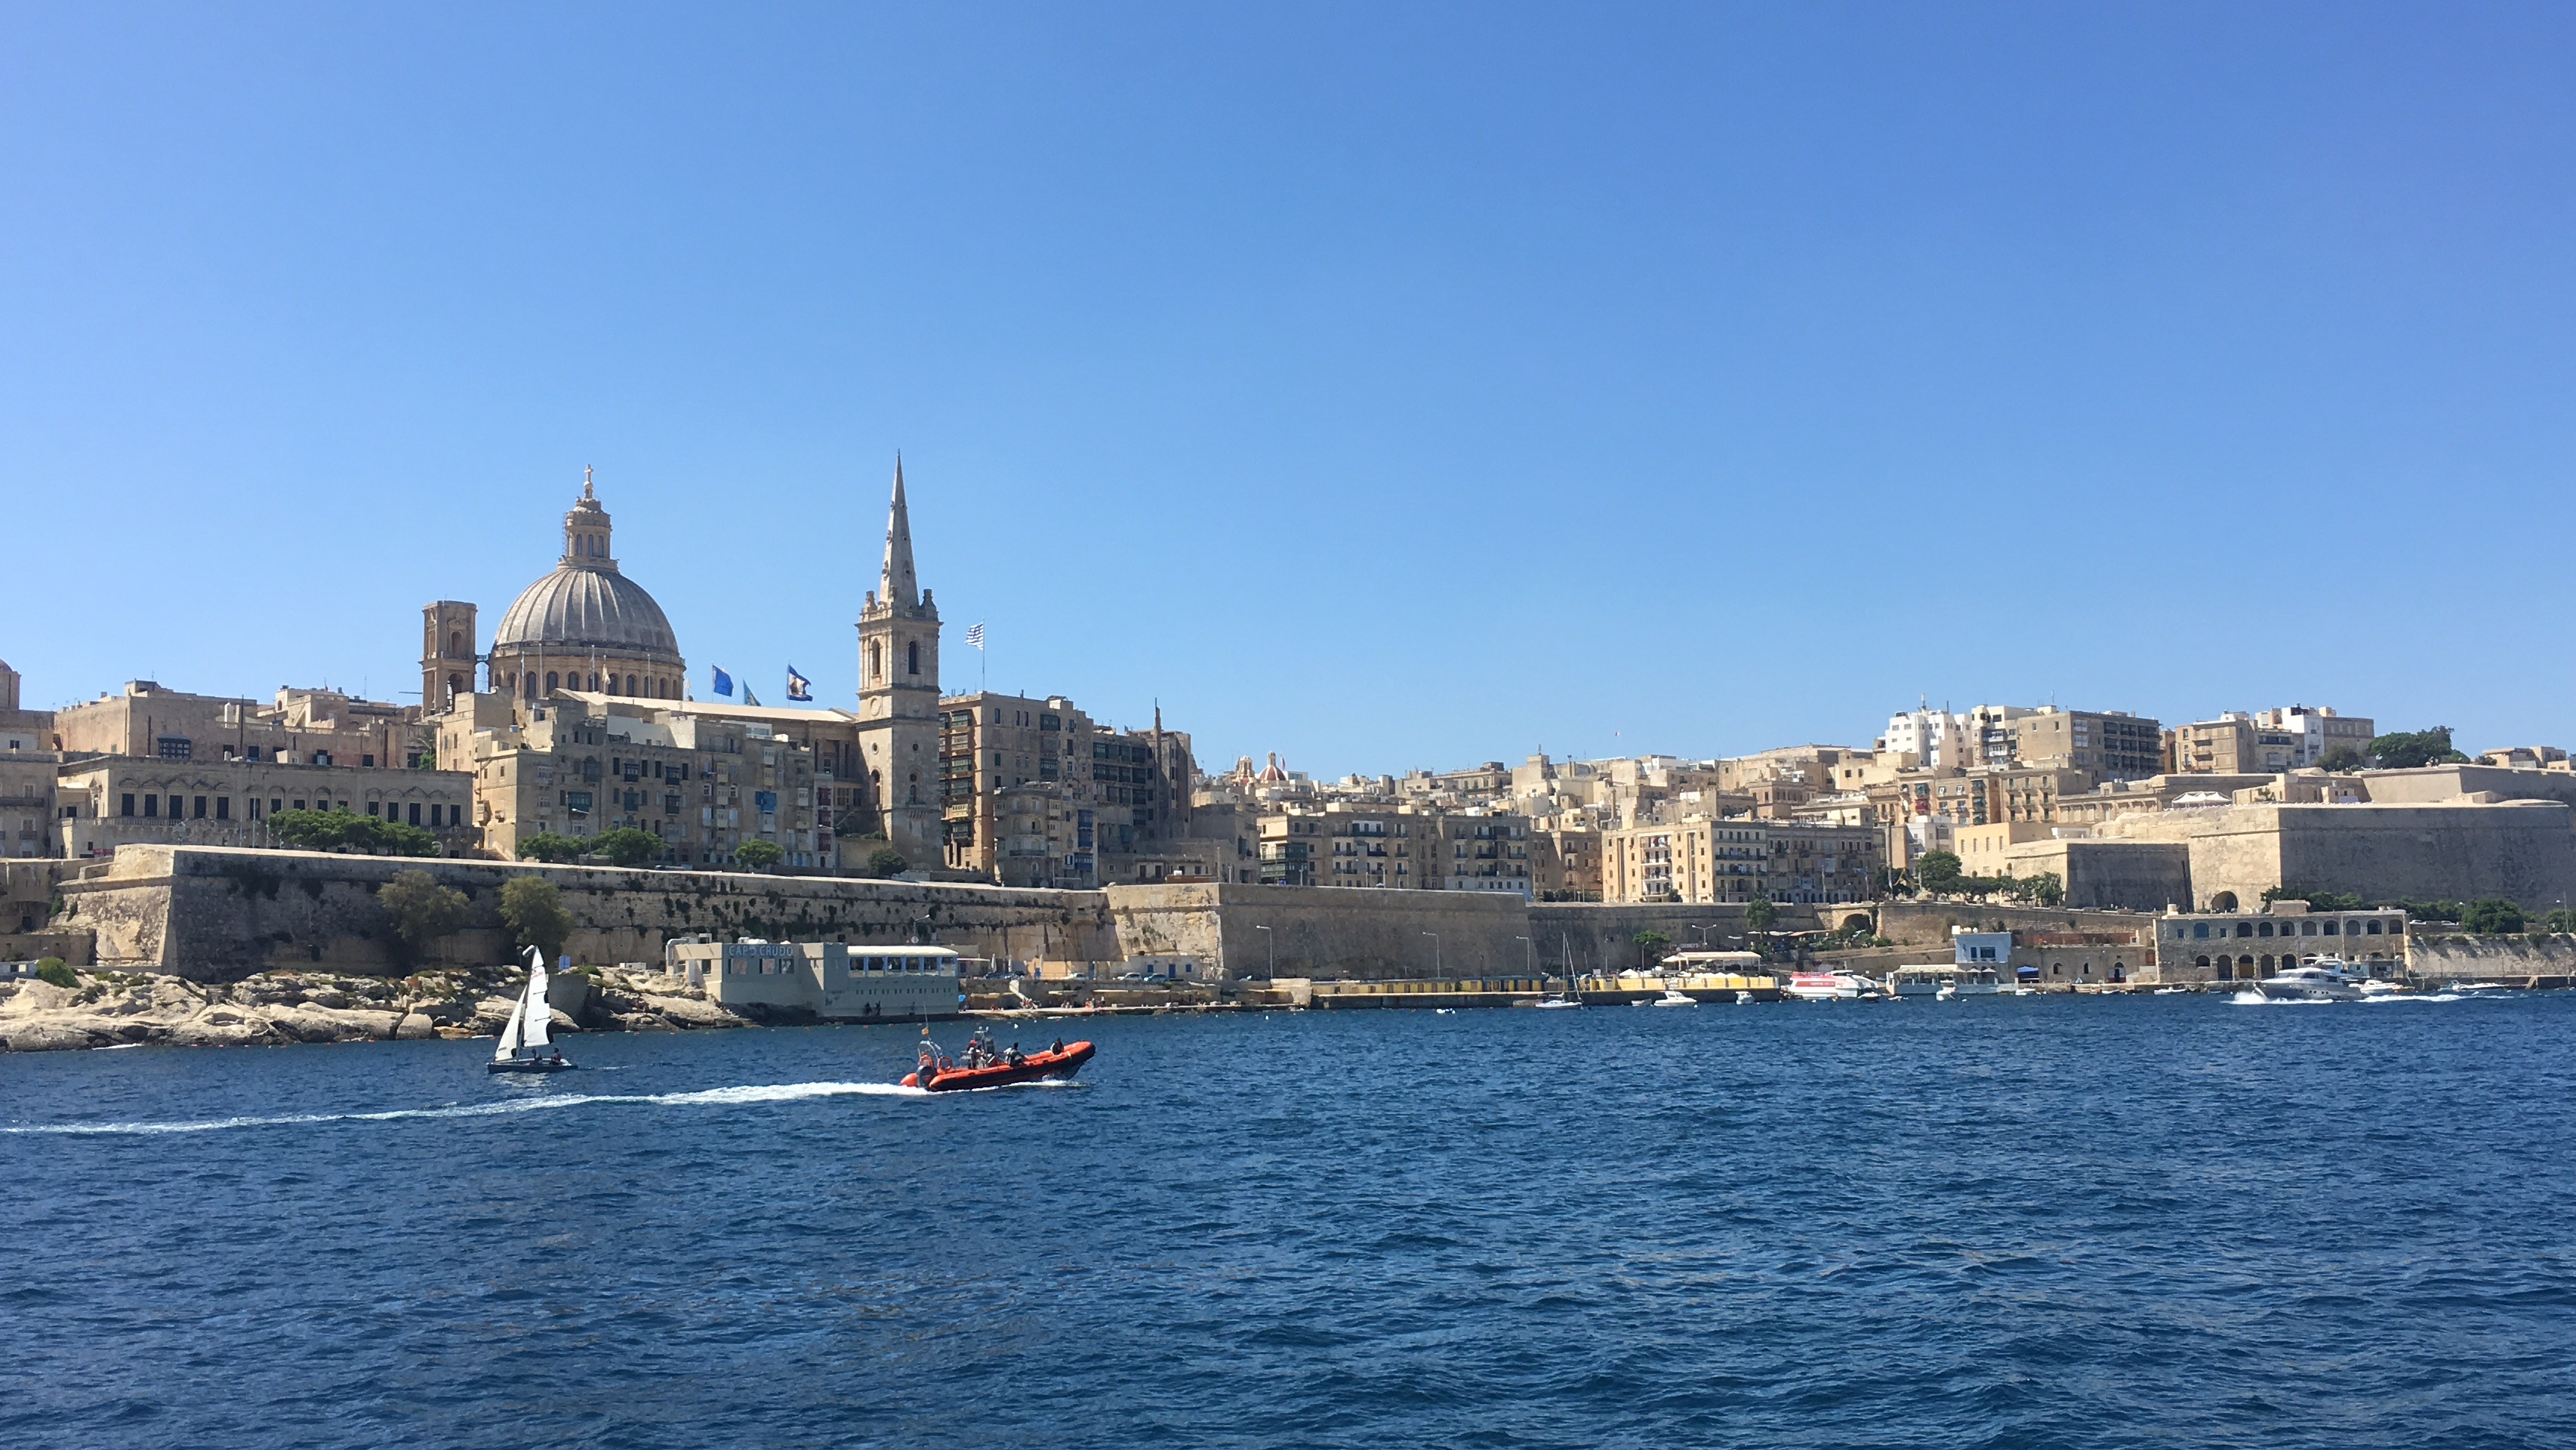 Malta GoT location